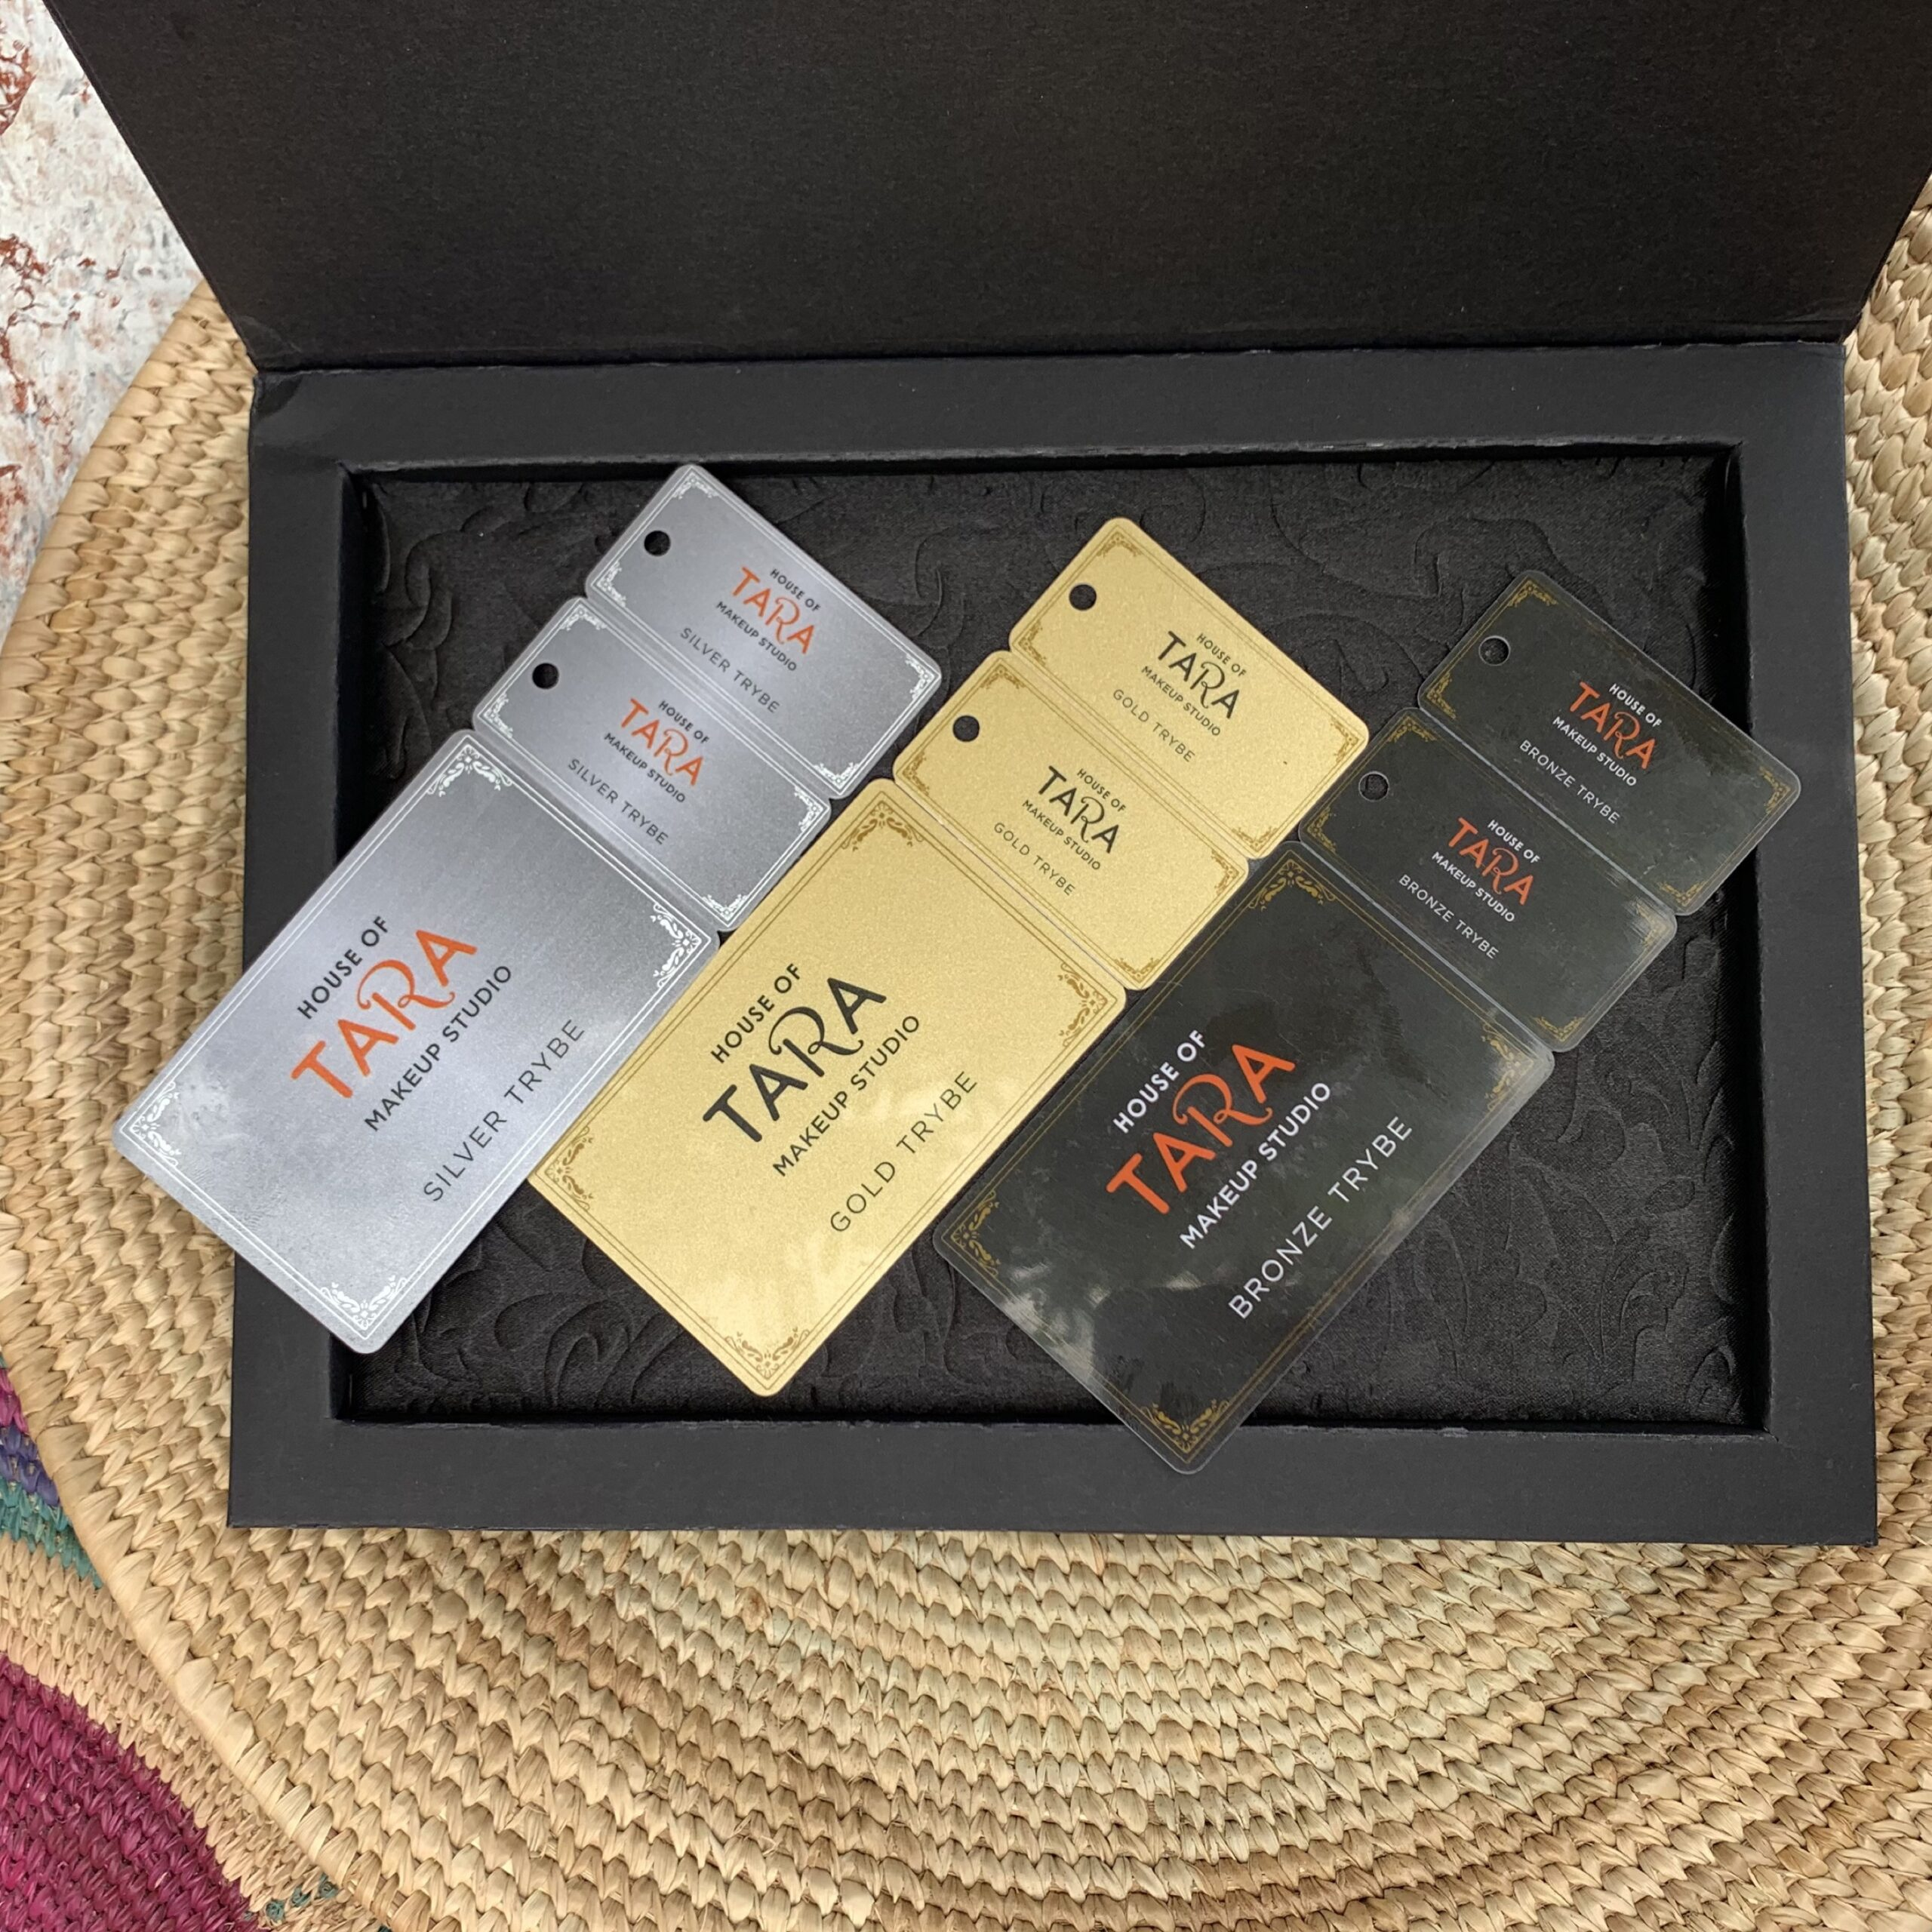 Tara Christmas gift box with 3 vouchers inside